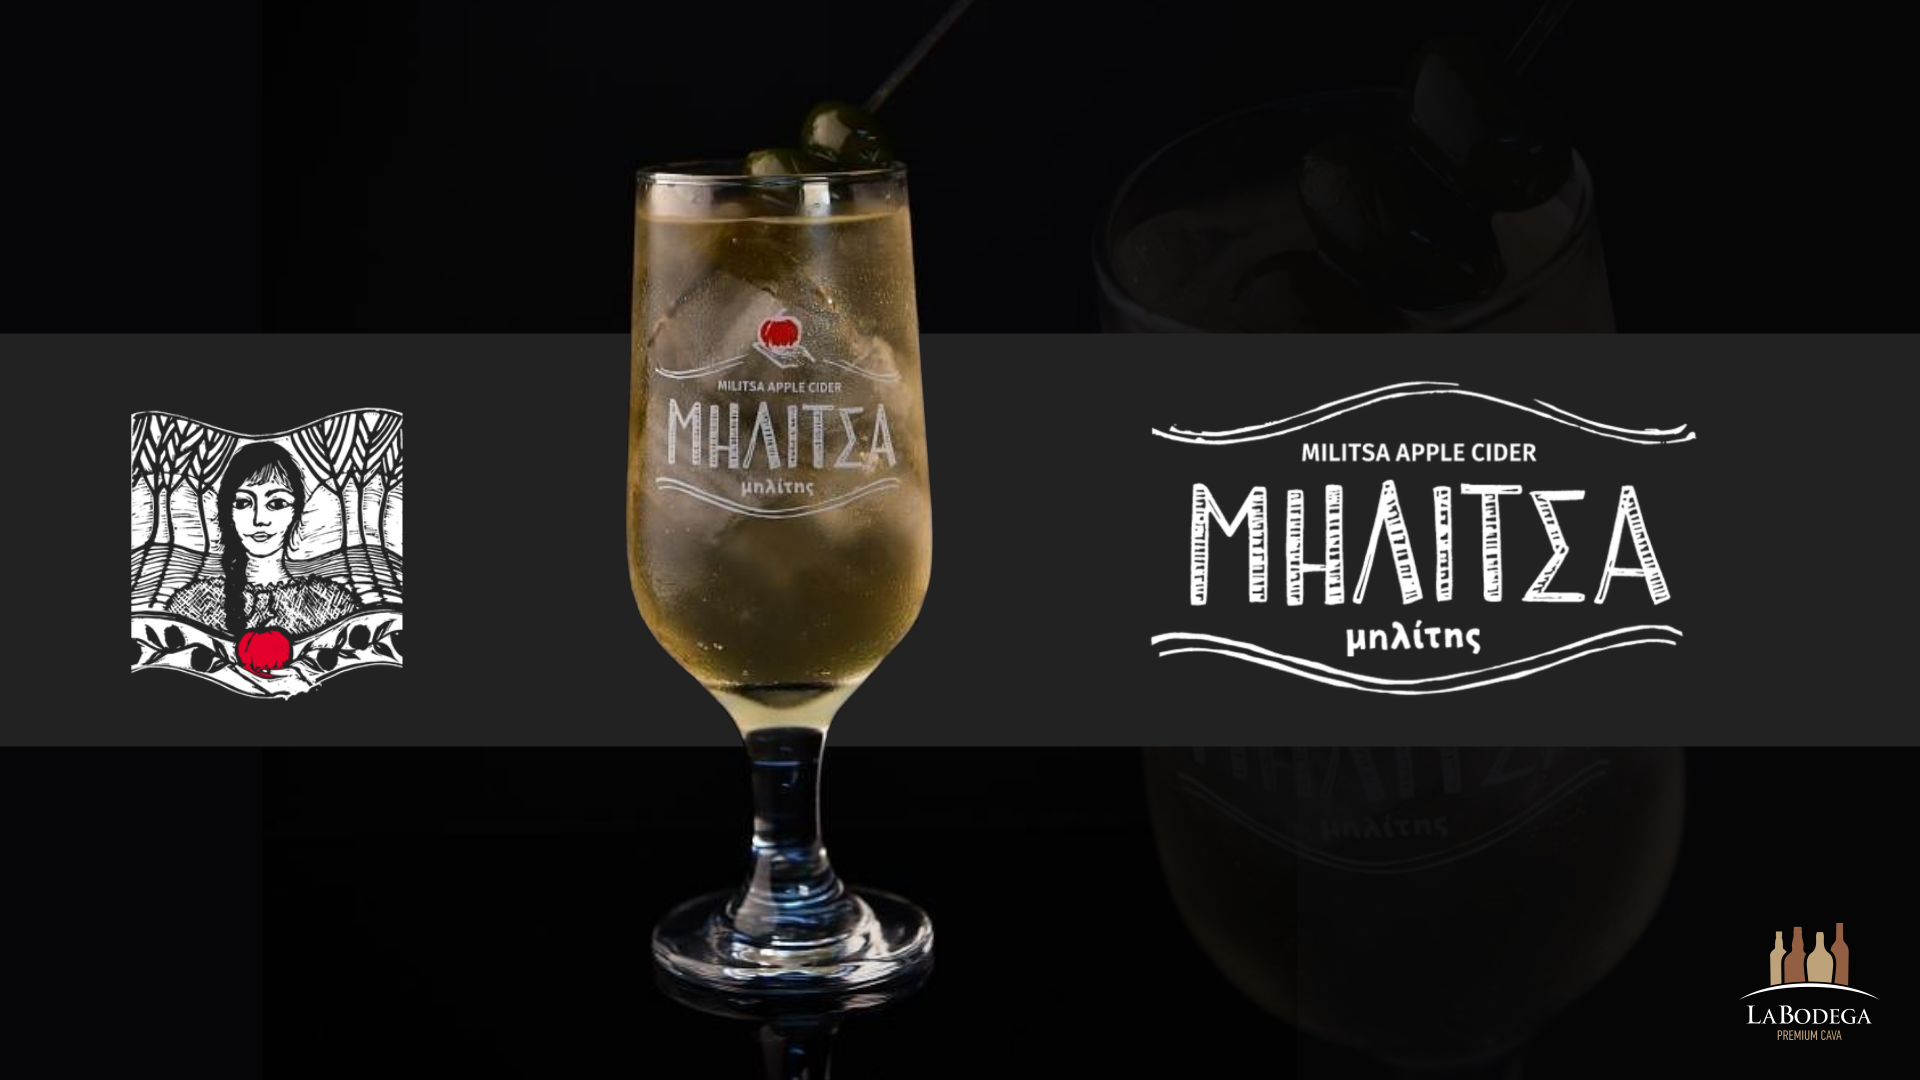 Meet the first Cyprus premium cider, Militsa